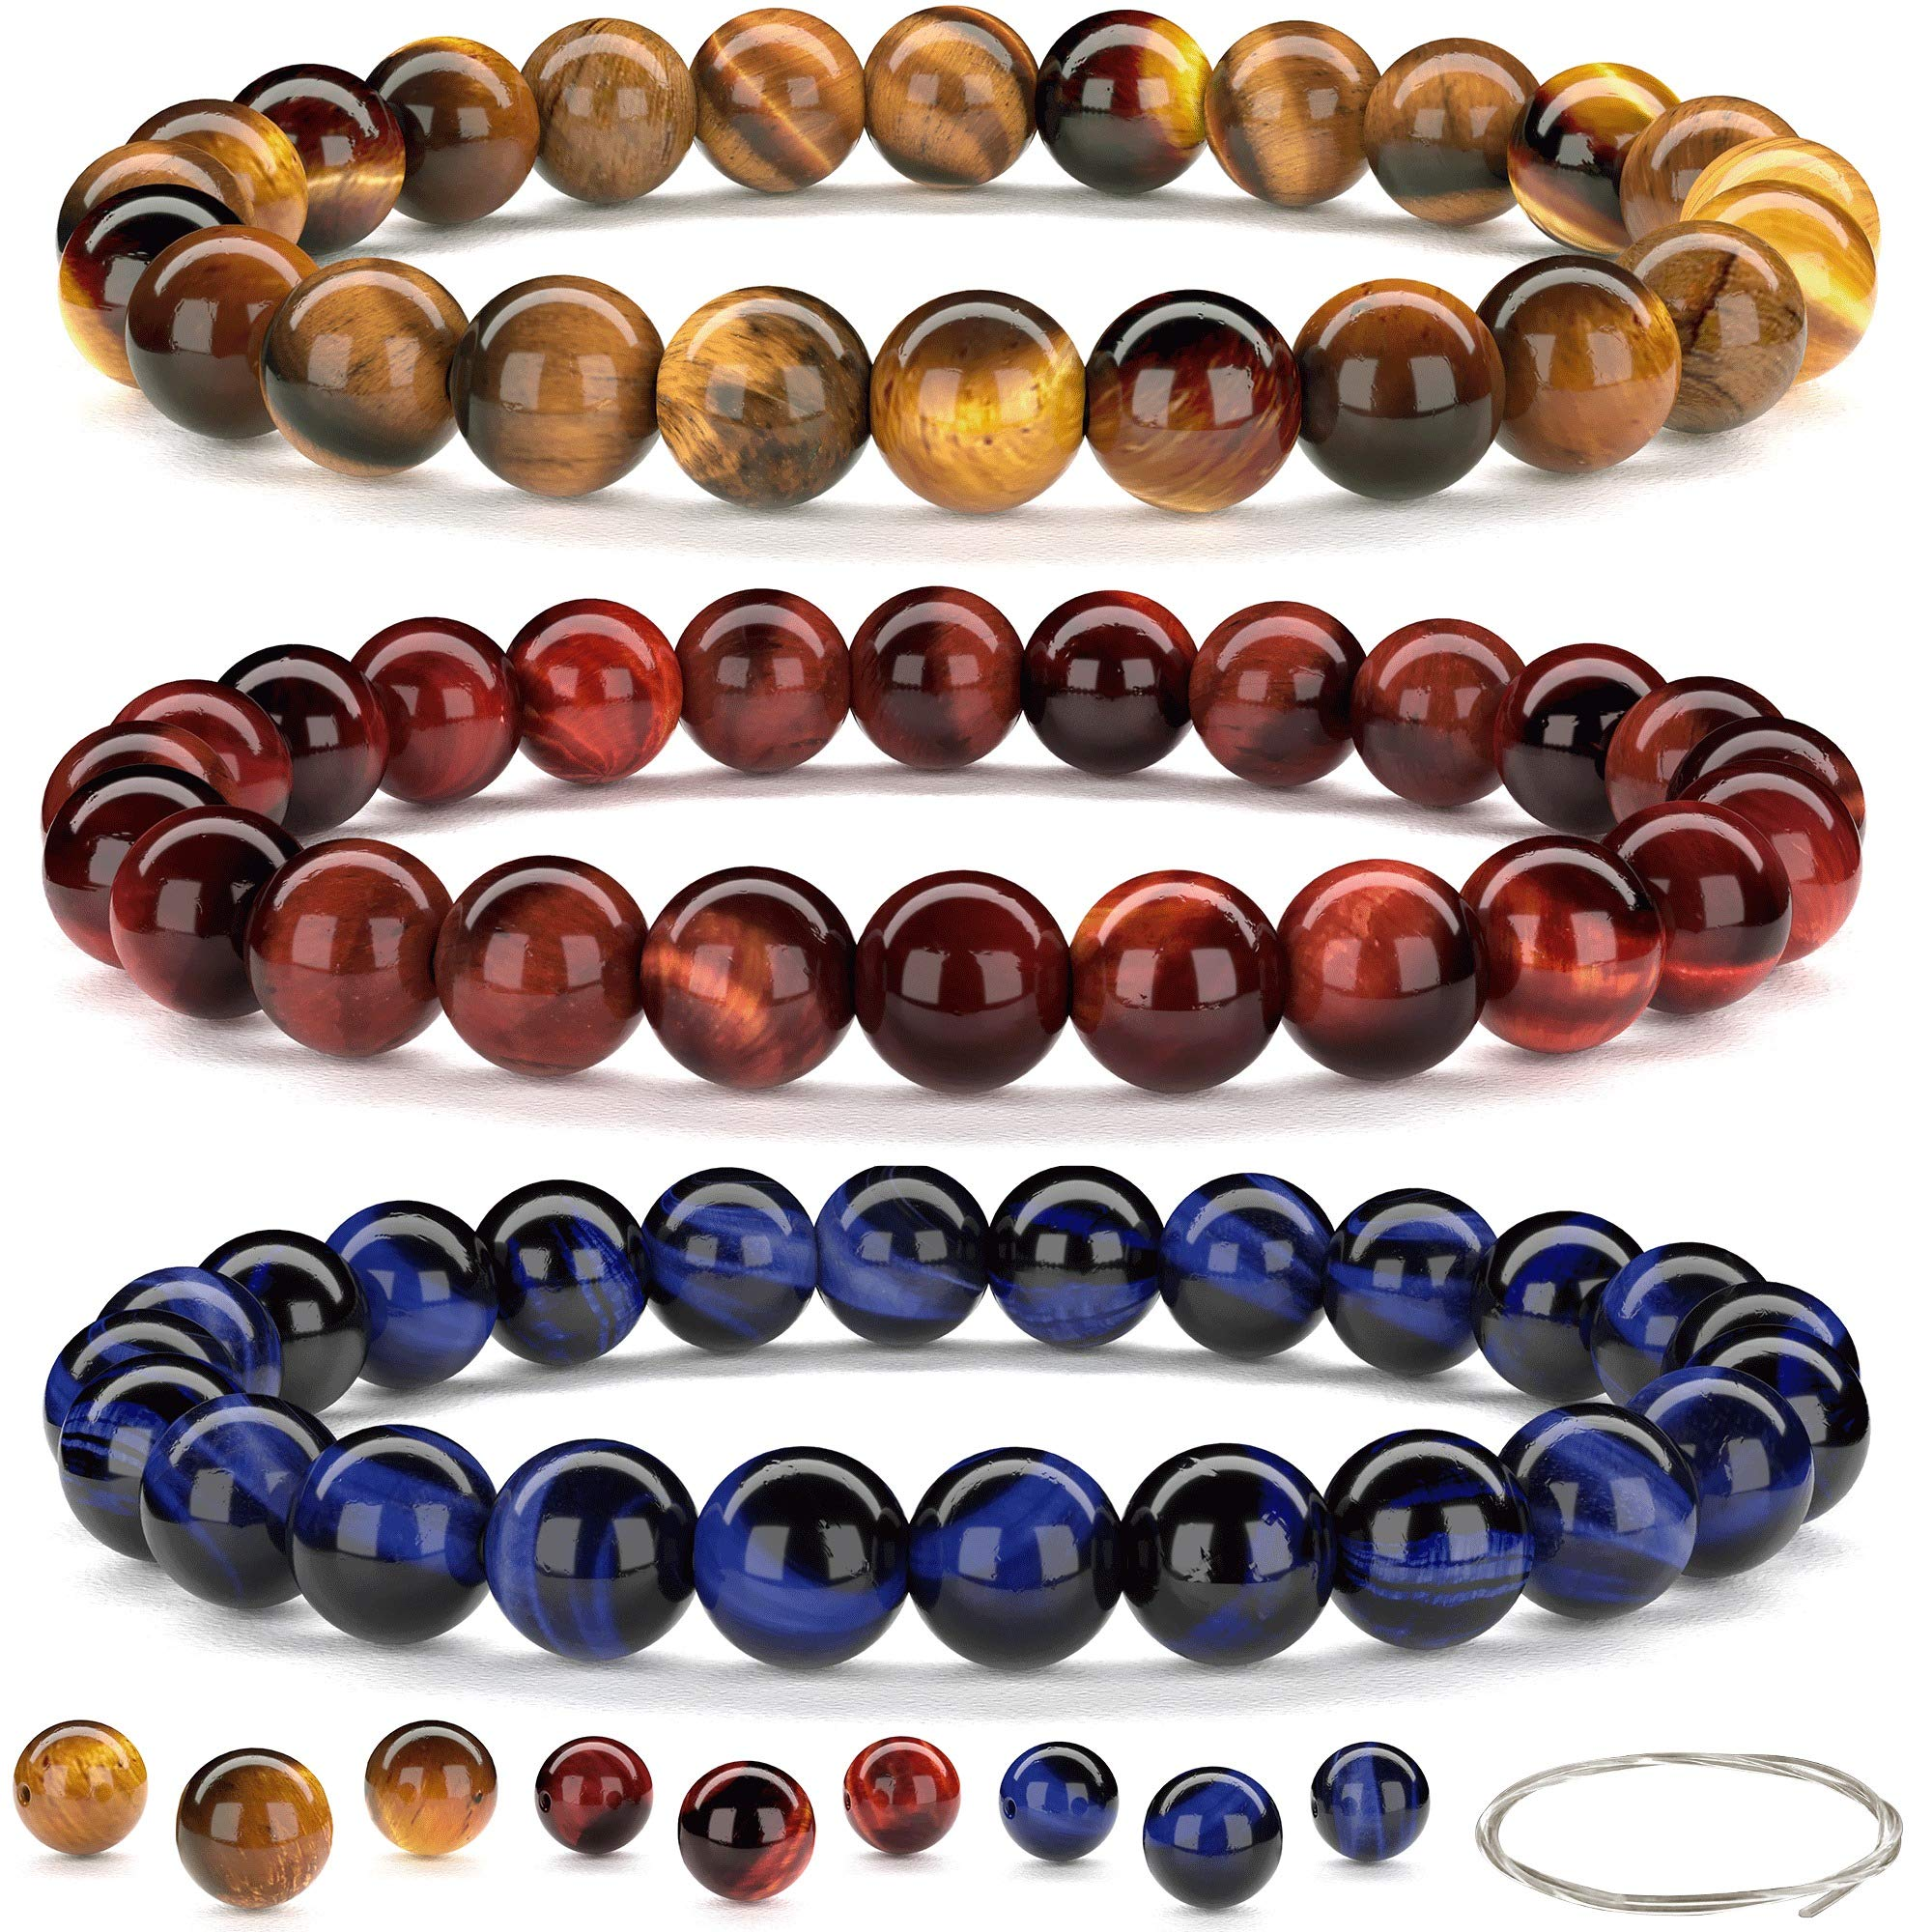 Beaded Gemstone Bracelets for Men and Women: Brown, Blue, and Red Tiger Eye Bracelet Sets with Spare Beads and Crystal Elastic Cord - Mens and Womens Boho Jewelry - 7.25 Inch Bead Bracelet 8mm Beads by Orti Jewelry